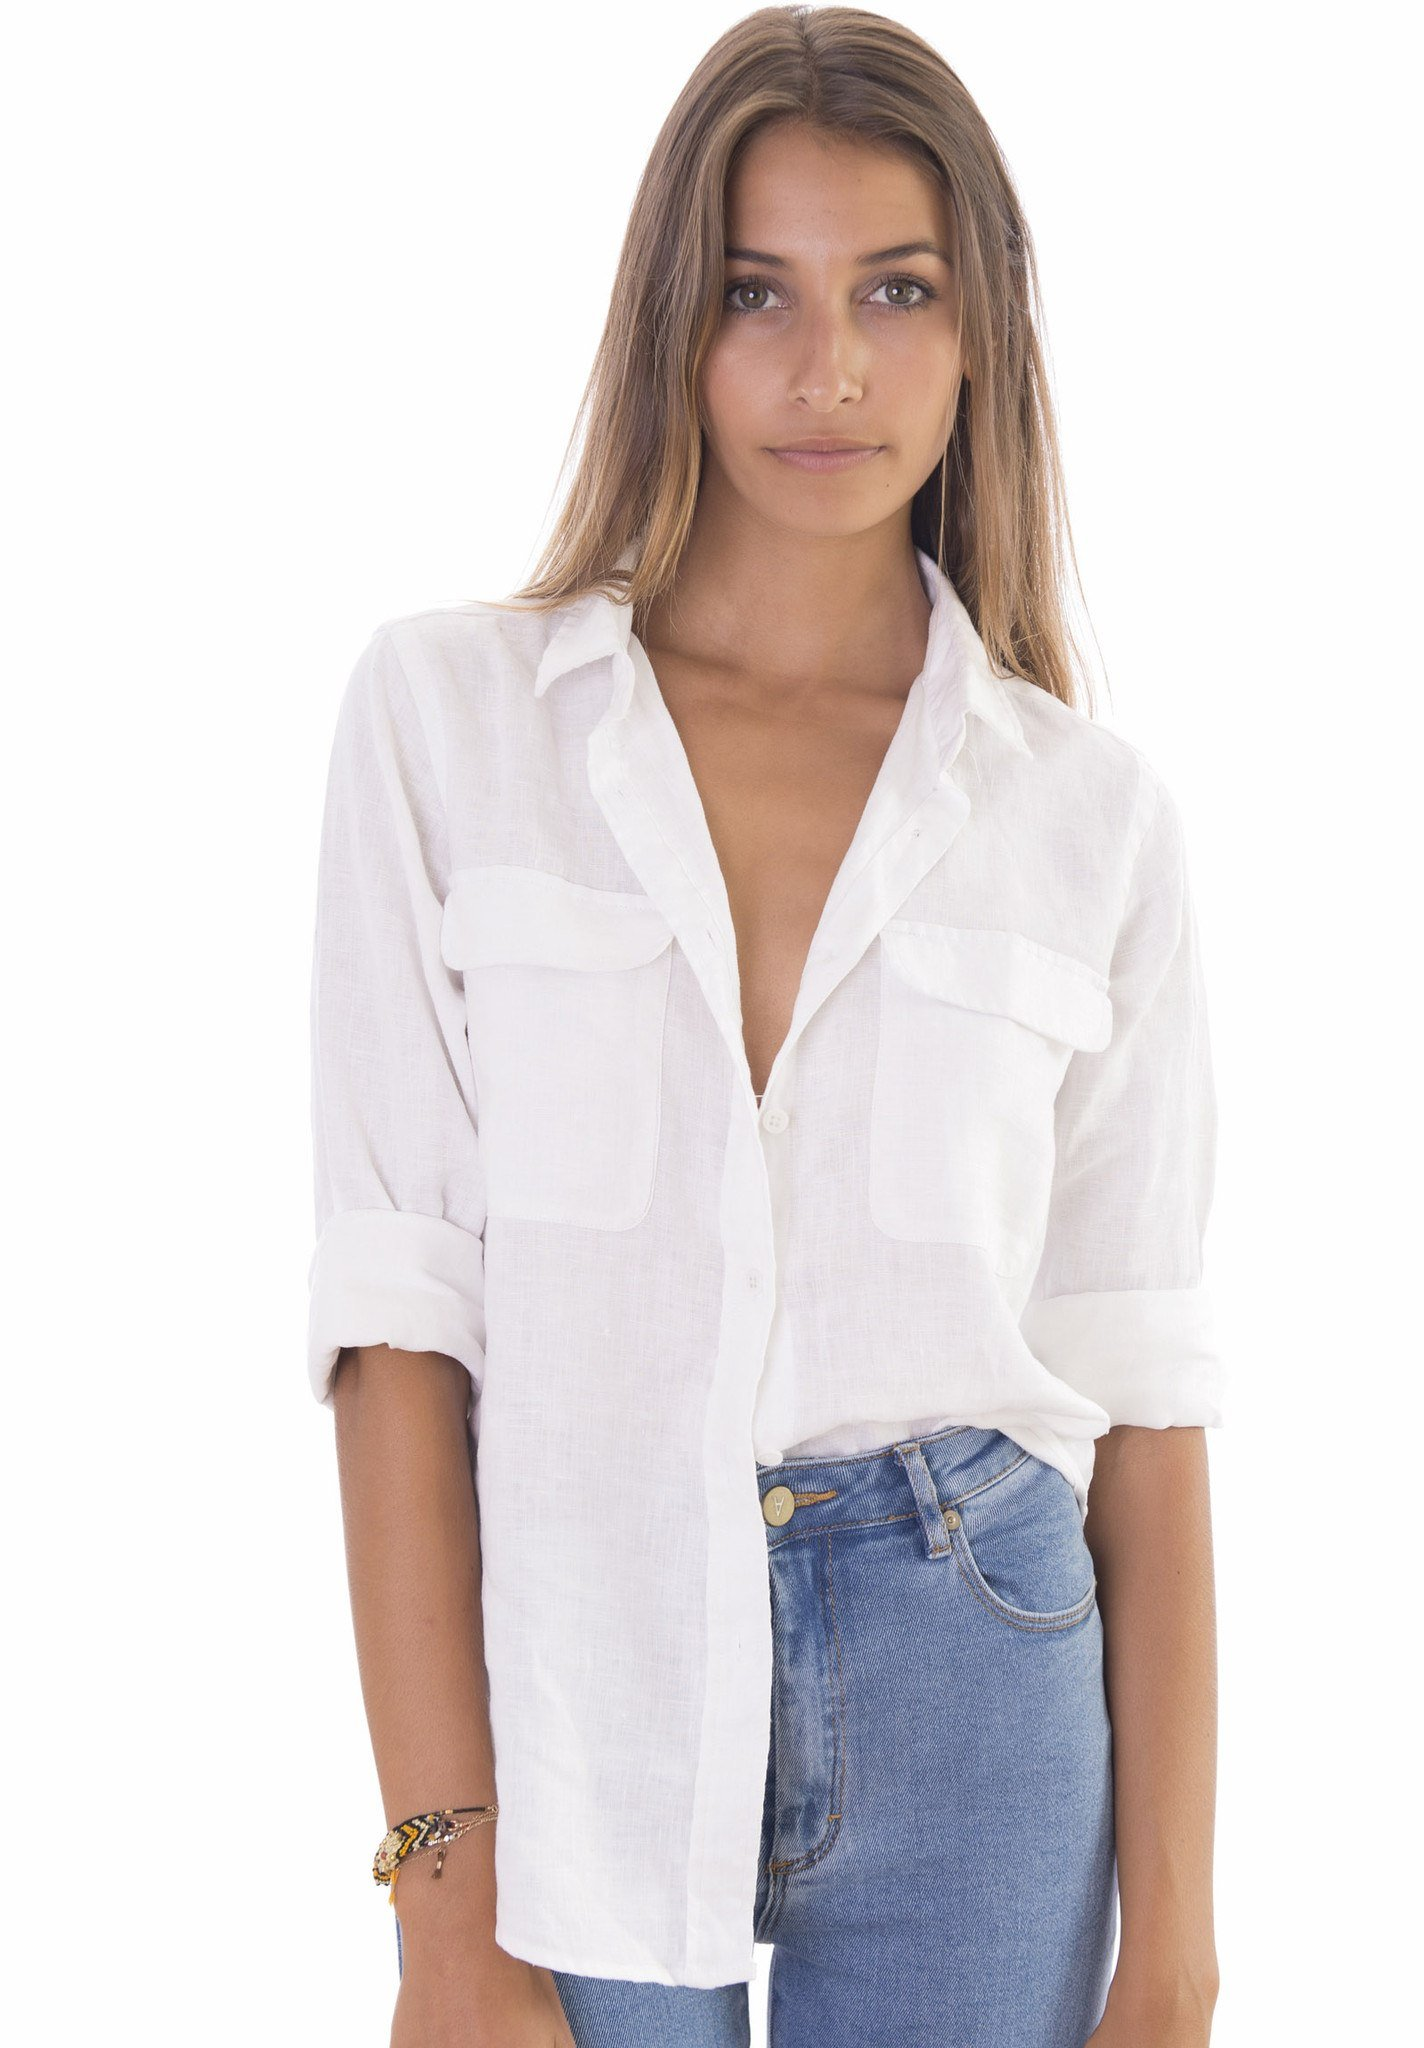 Womens White Shirts lete white, relaxed linen shirt with pockets GYHVOHU